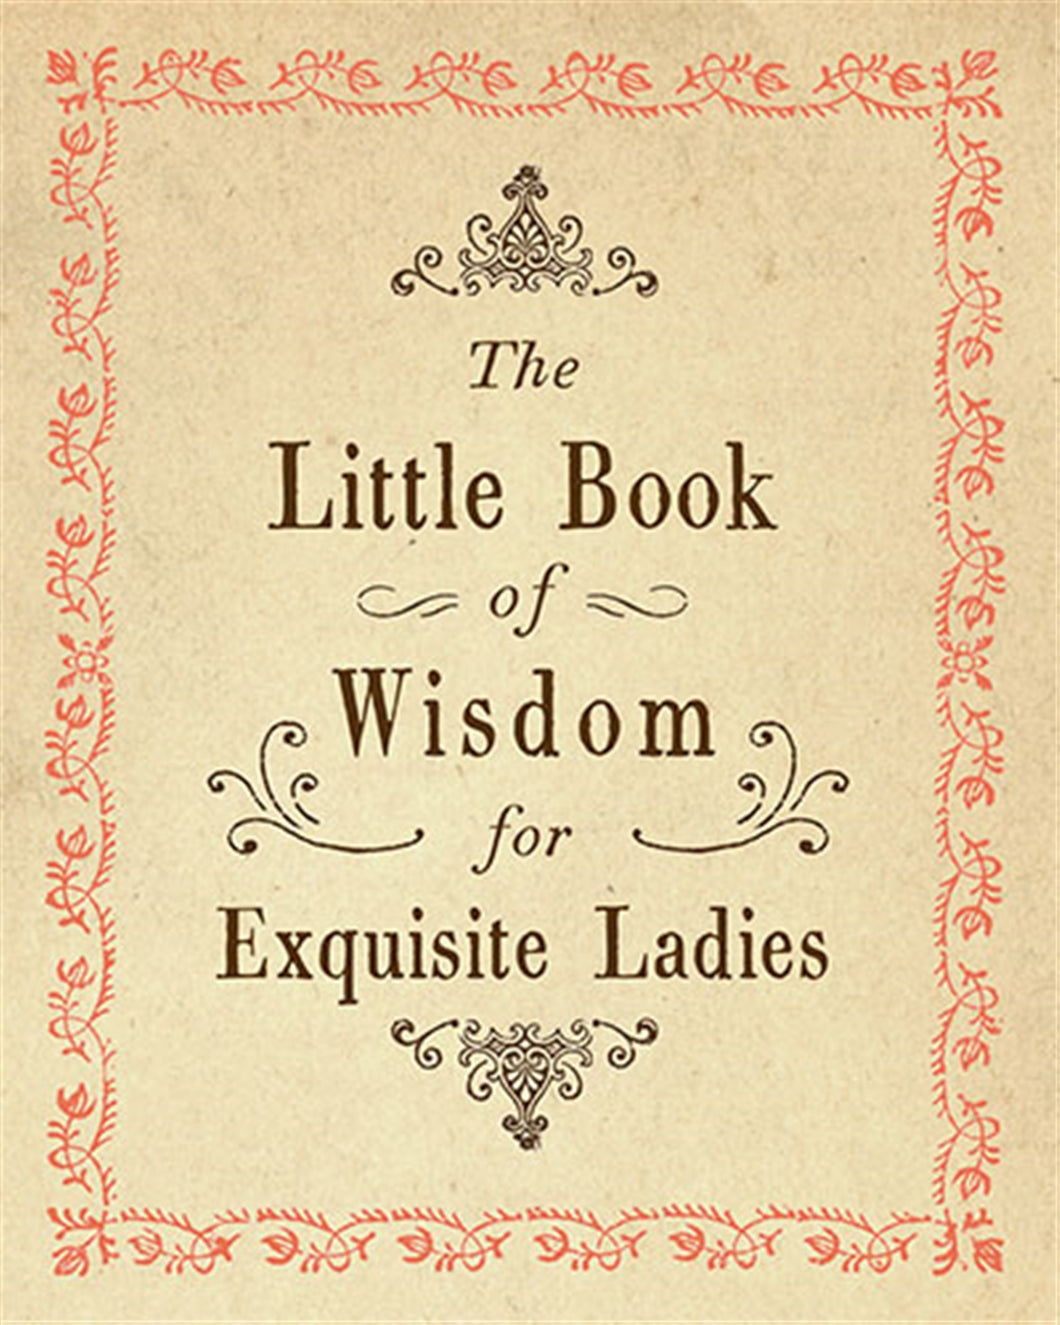 Books of Wisdom